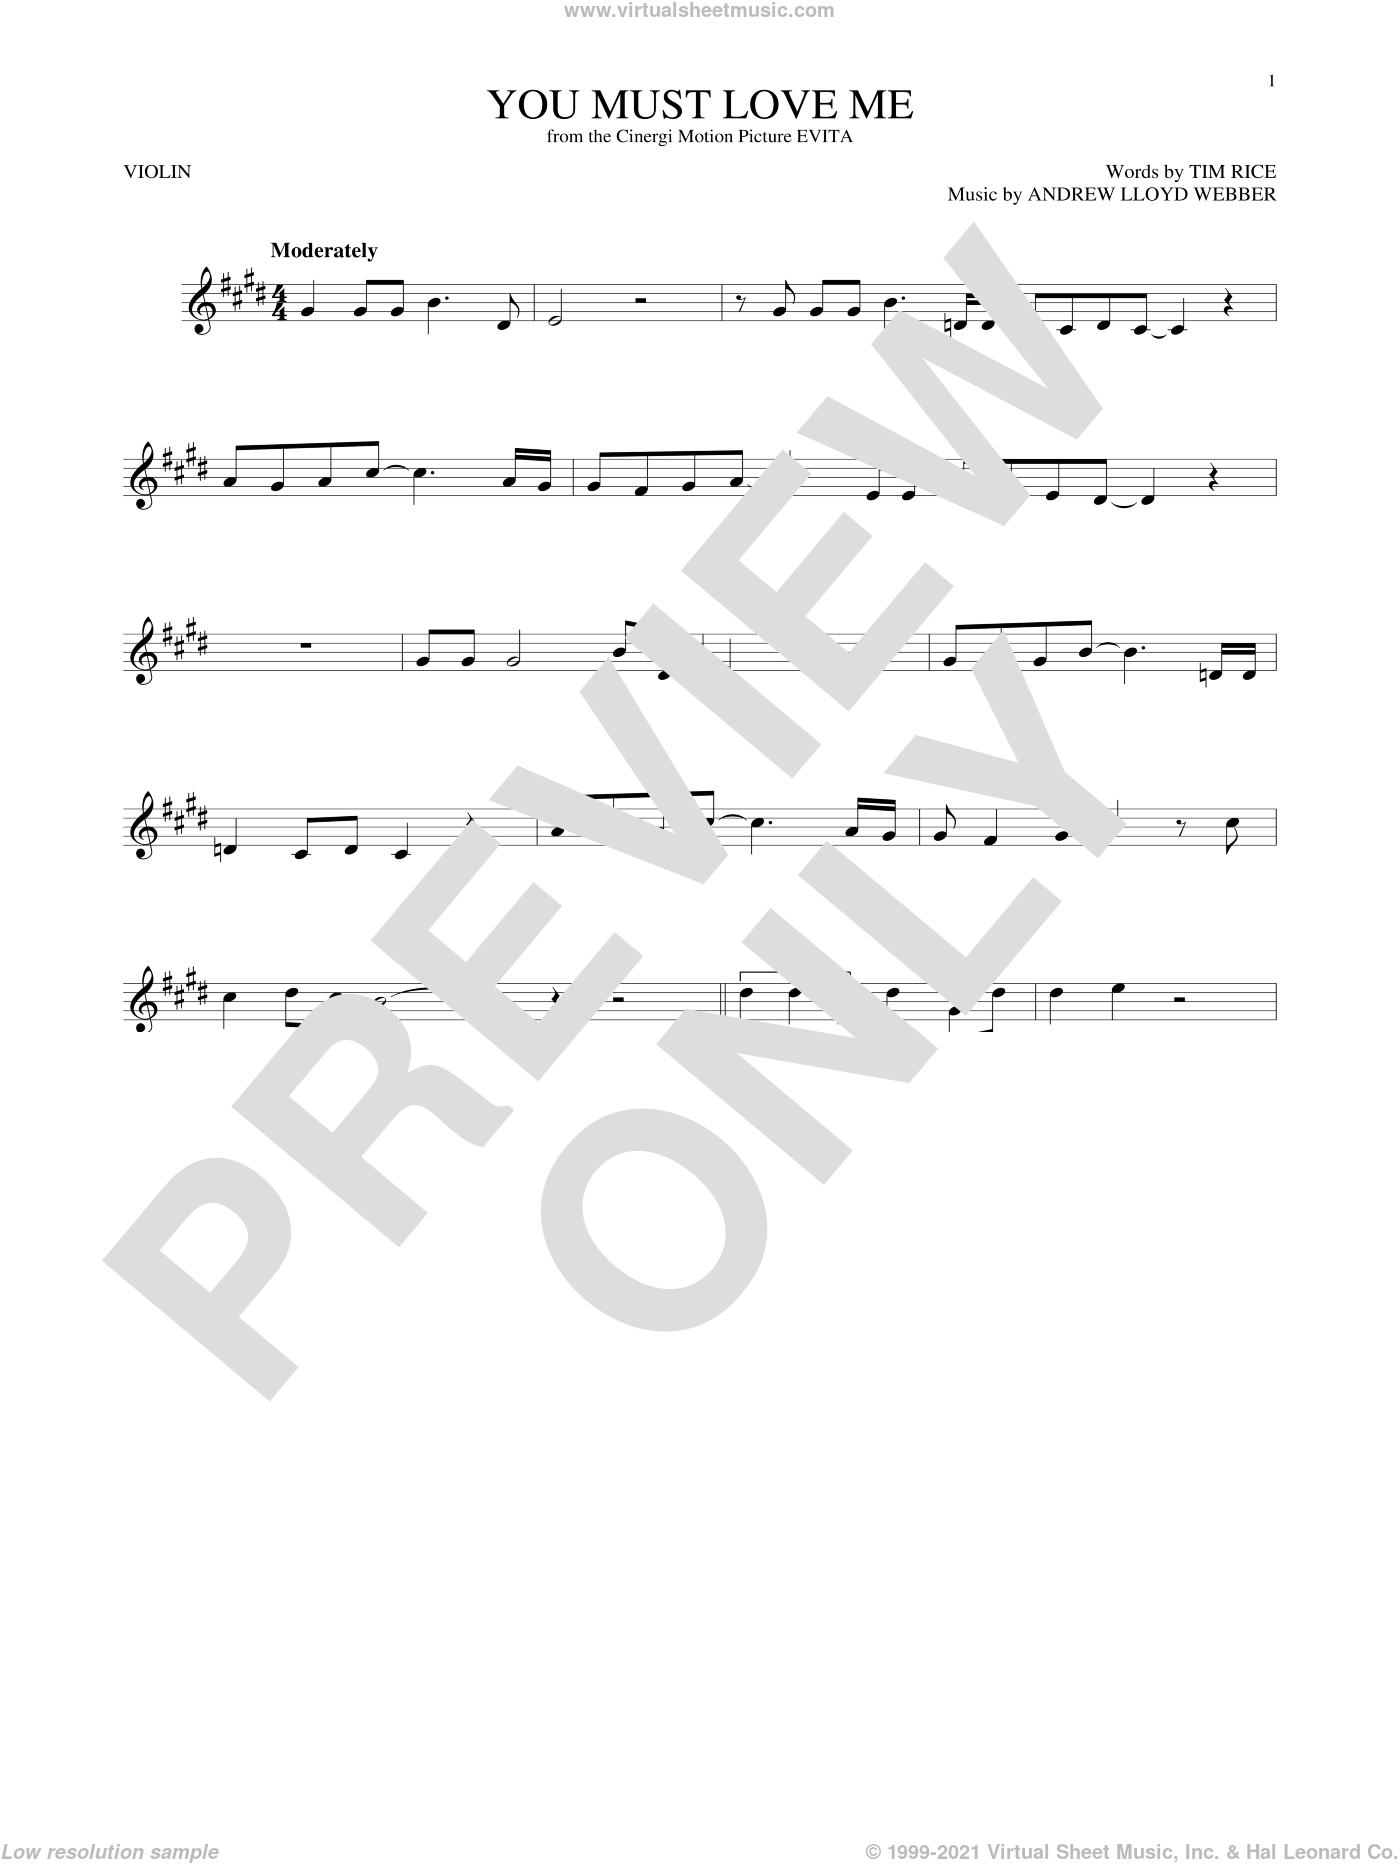 You Must Love Me sheet music for violin solo by Andrew Lloyd Webber, Madonna and Tim Rice, intermediate skill level